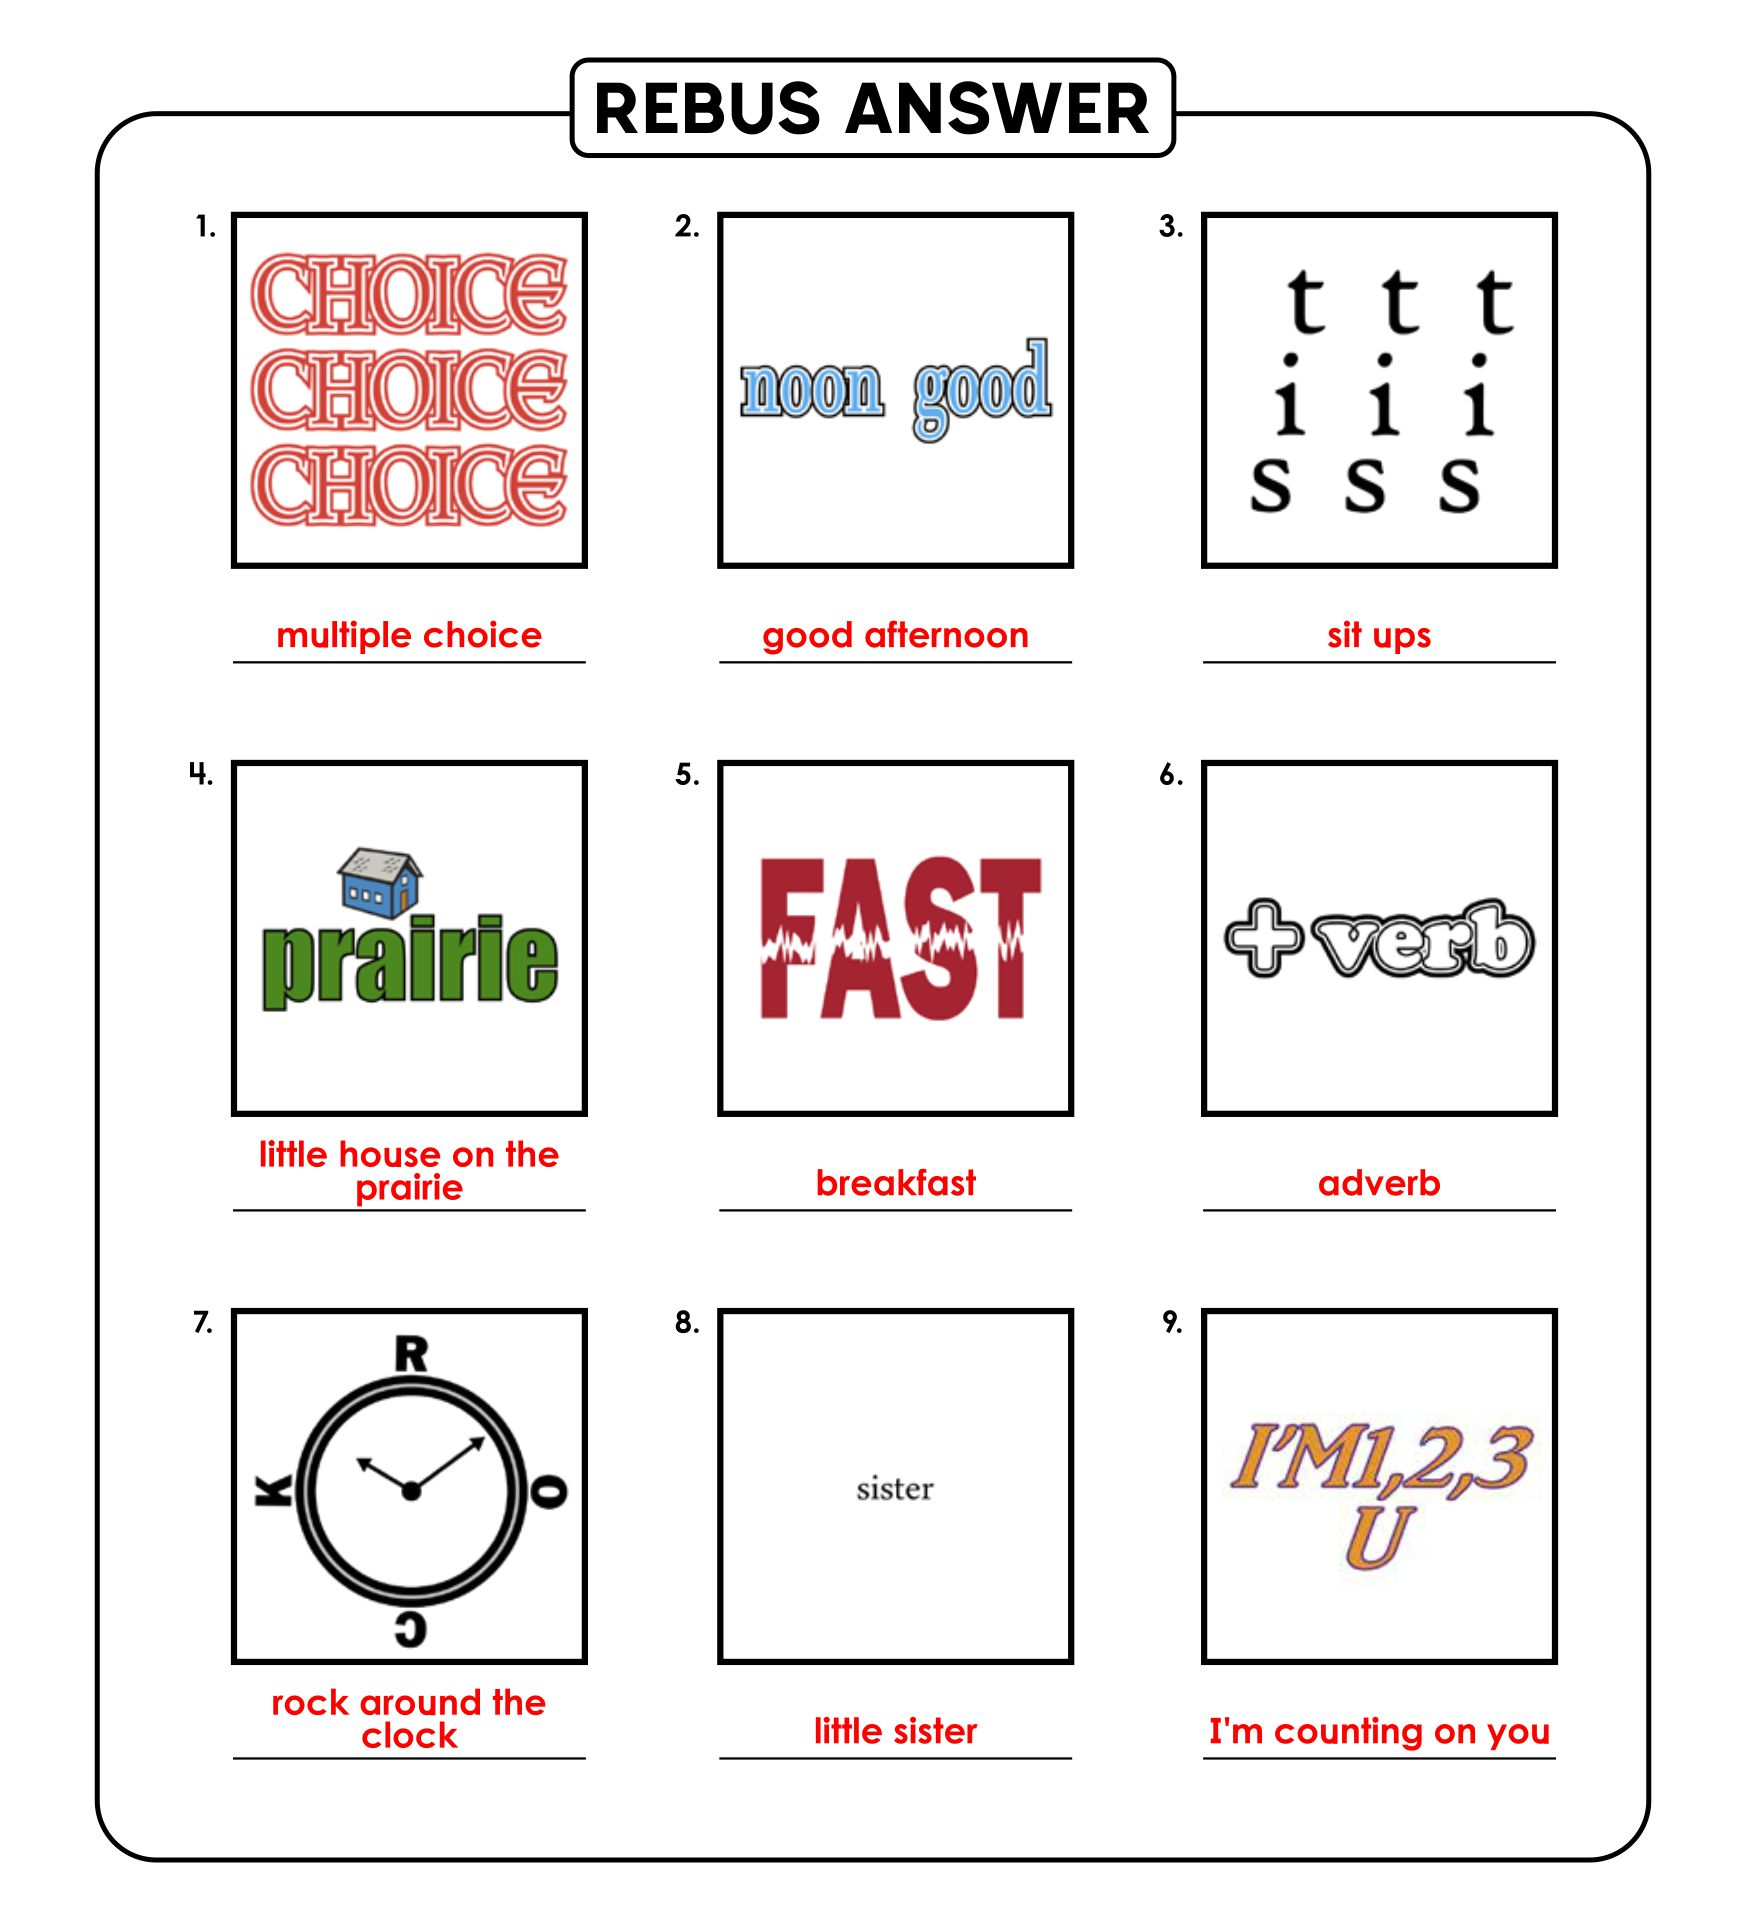 7 Best Printable Rebus Puzzles With Answers Printablee Com